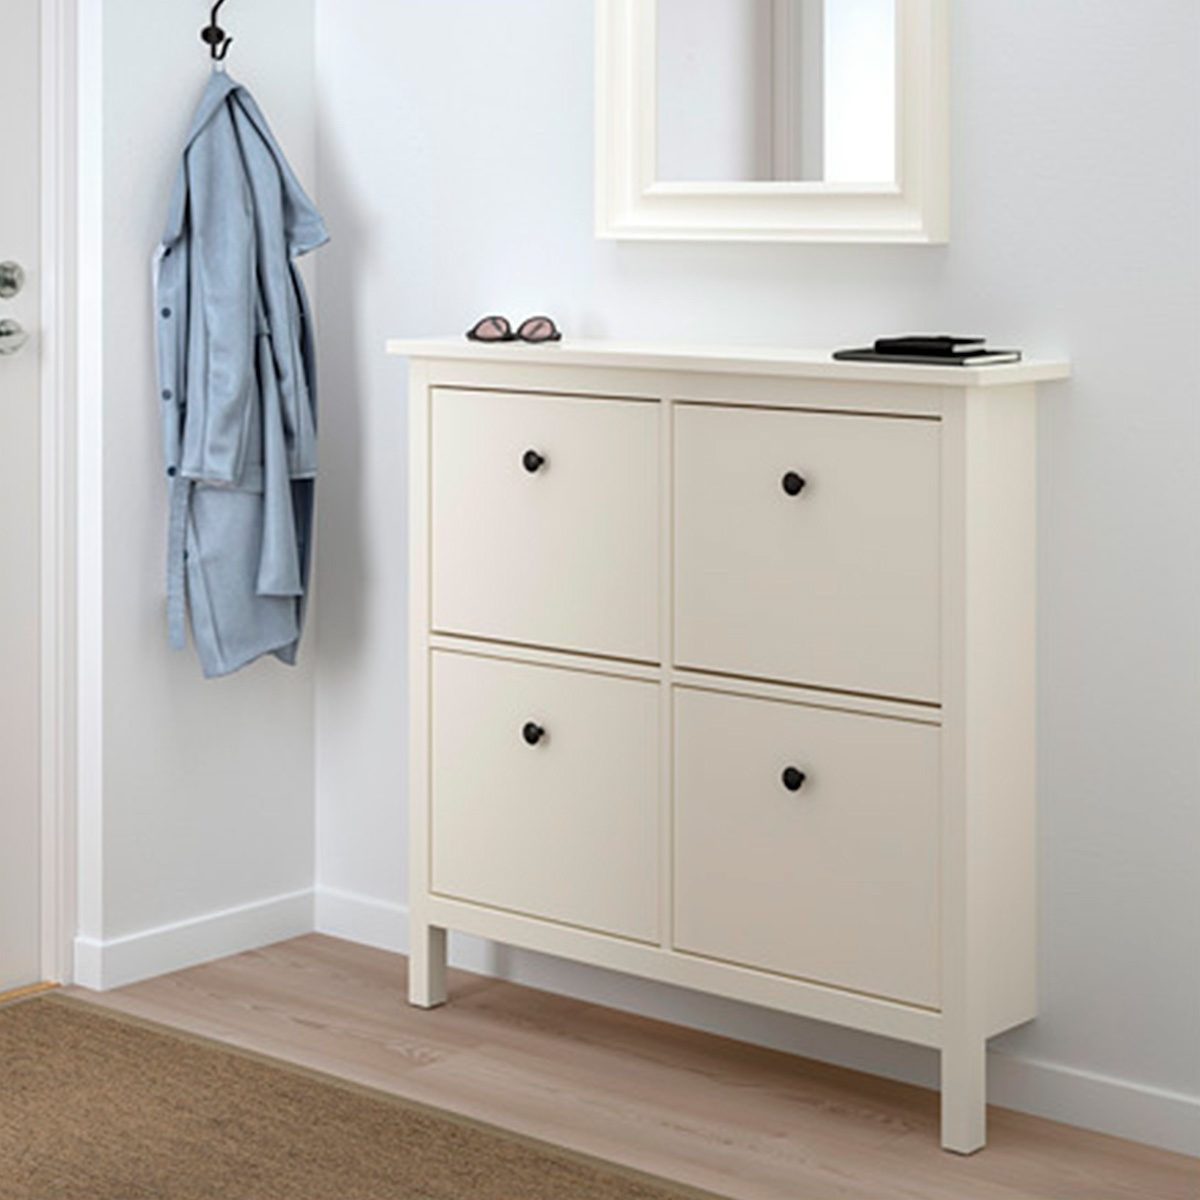 Use Mudroom Space Wisely